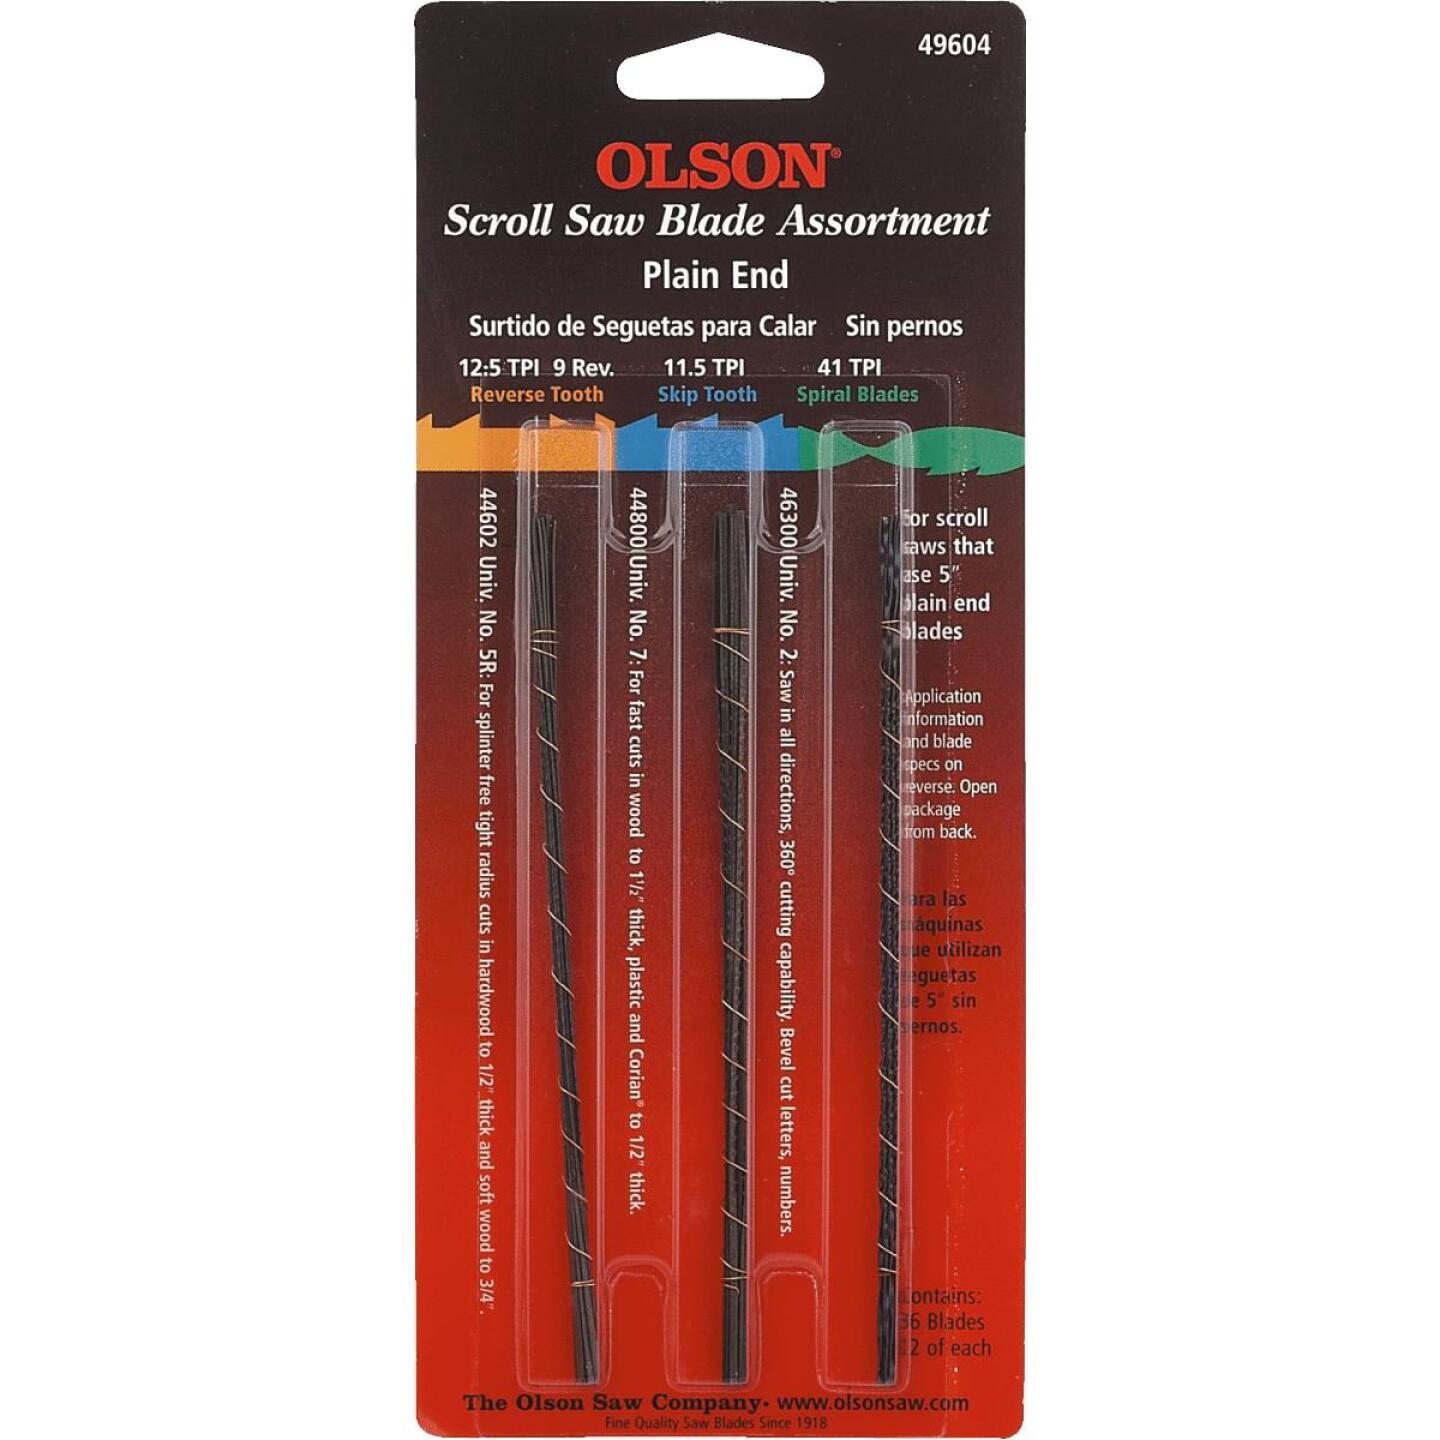 Olson Plain End Scroll Saw Blade Assortment (36 Piece) Image 2